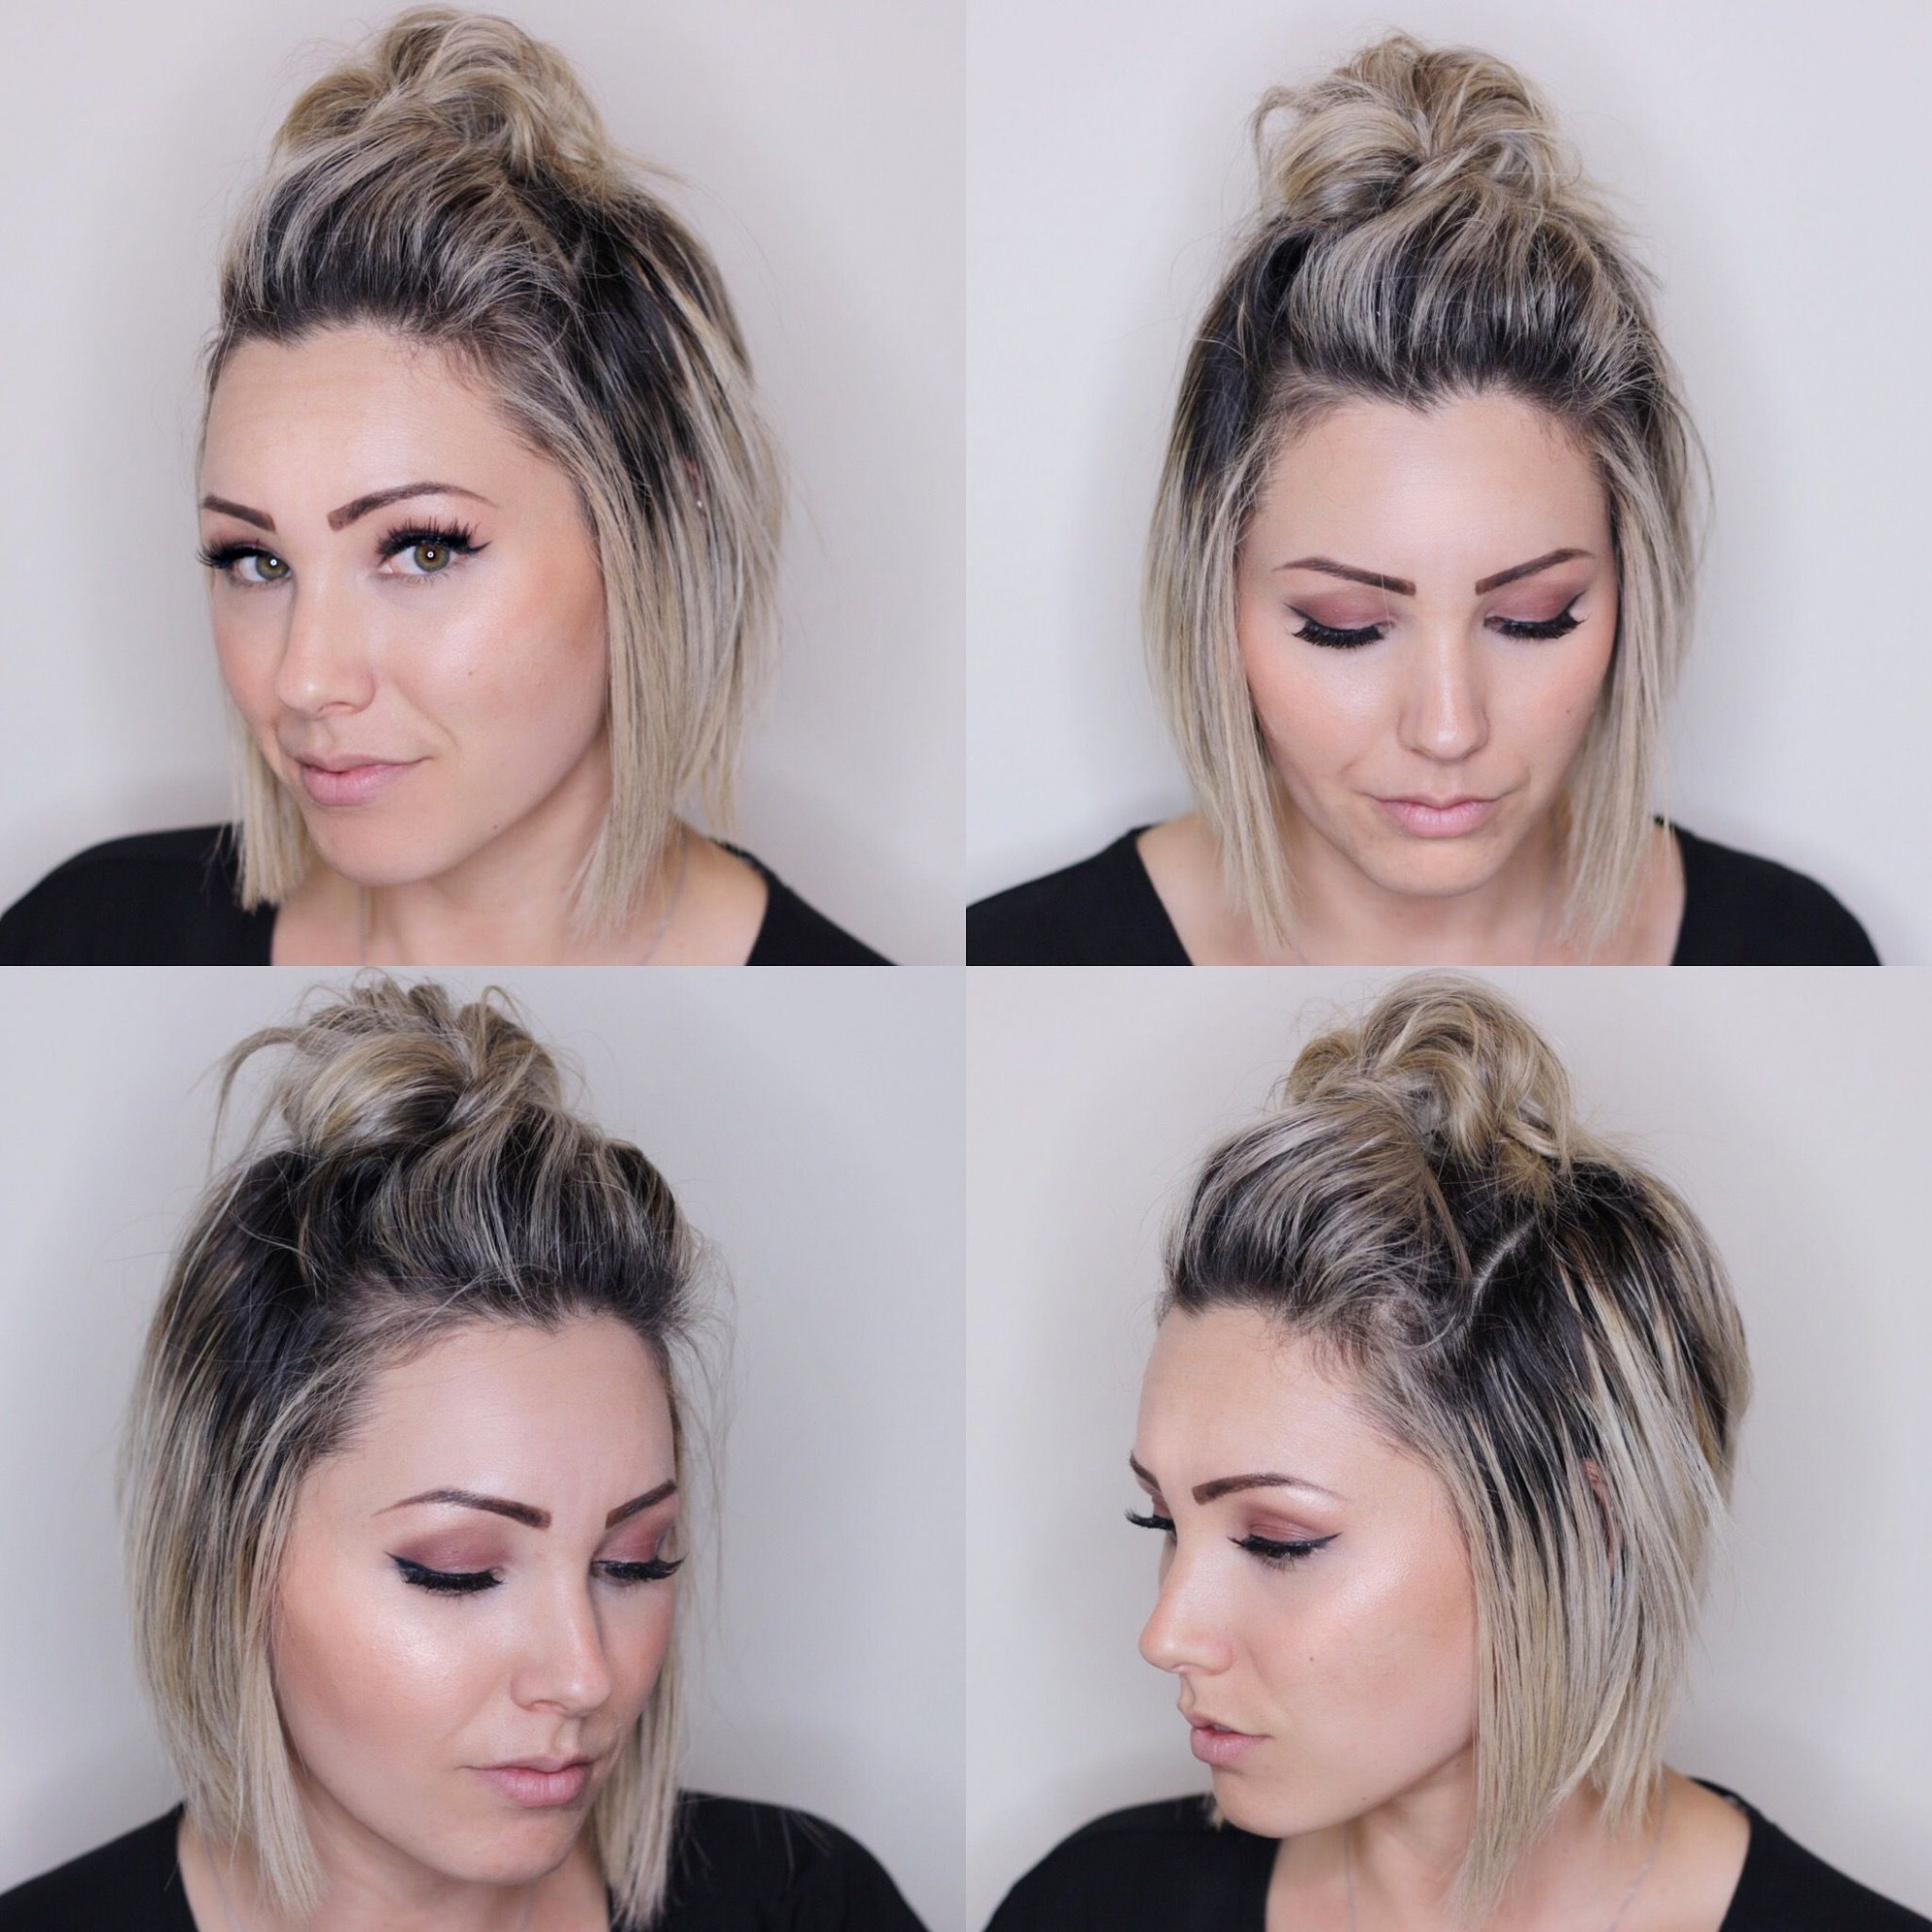 Top Knot For Short Hair Short Hairstyle